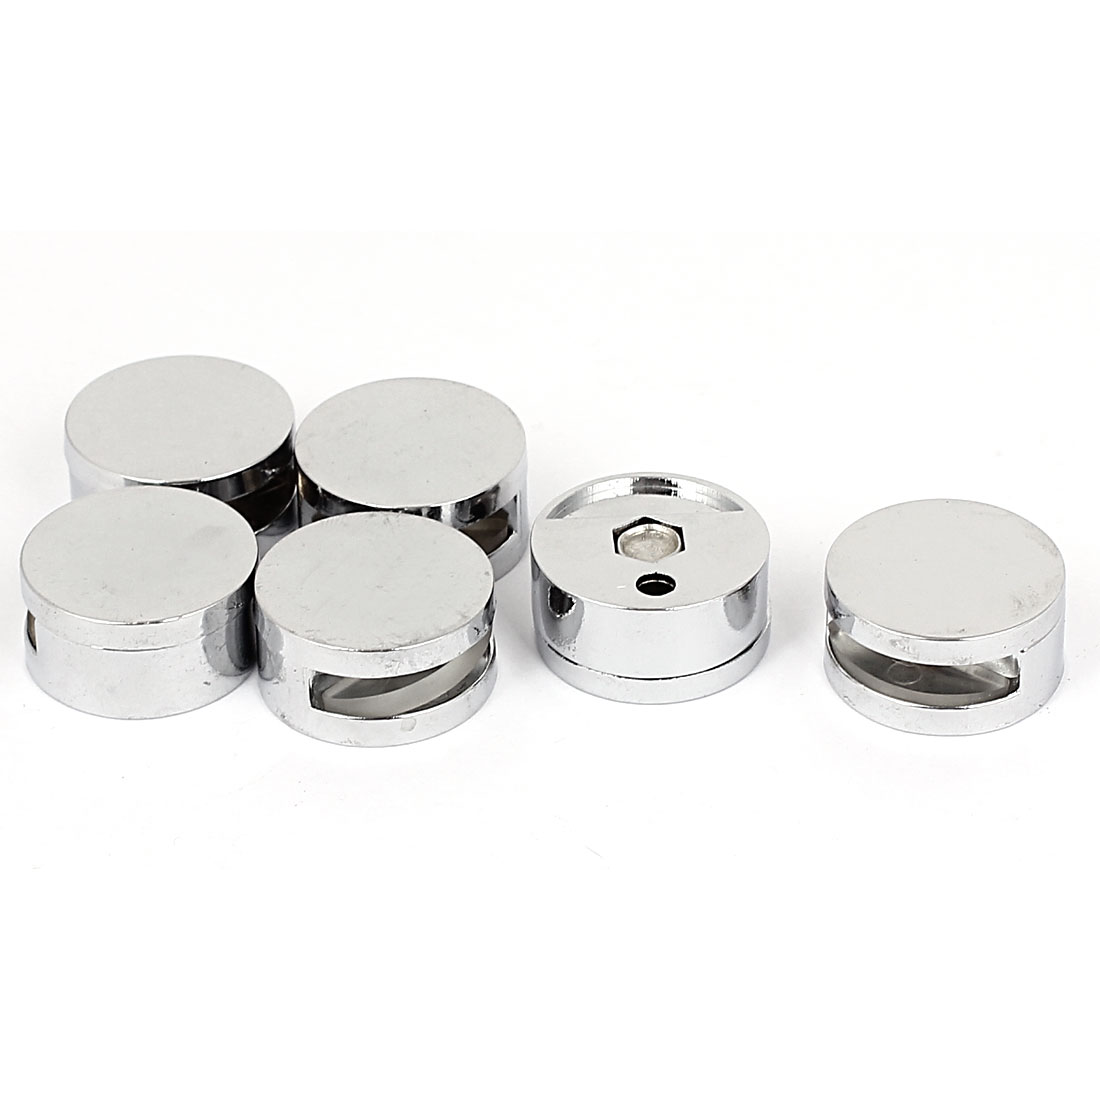 Round Shaped Zinc Alloy Clip Clamp Holder Silver Tone 6pcs for 3-5mm Thick Glass